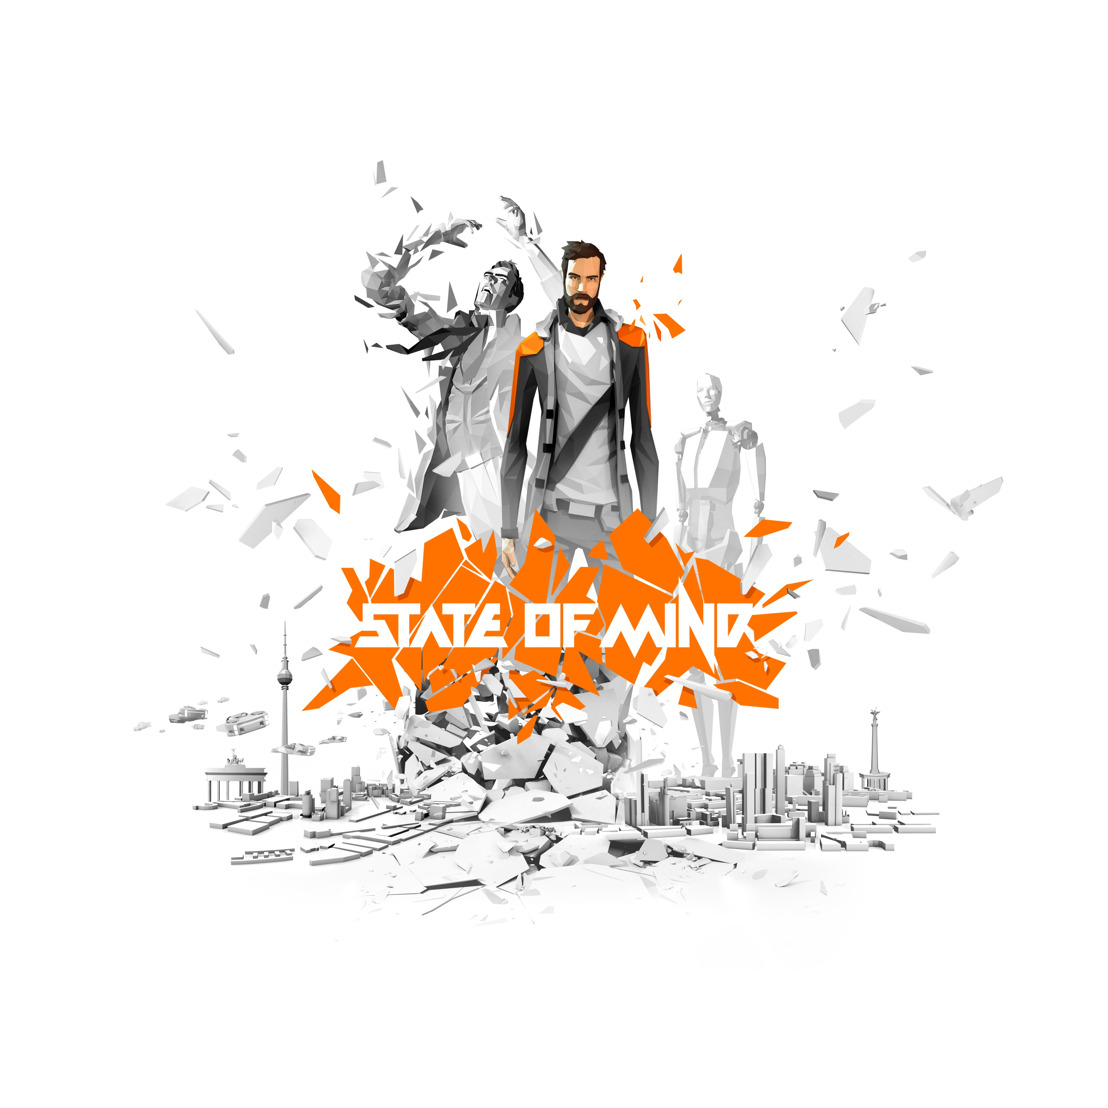 State of Mind - Daedalic kicks off preorder